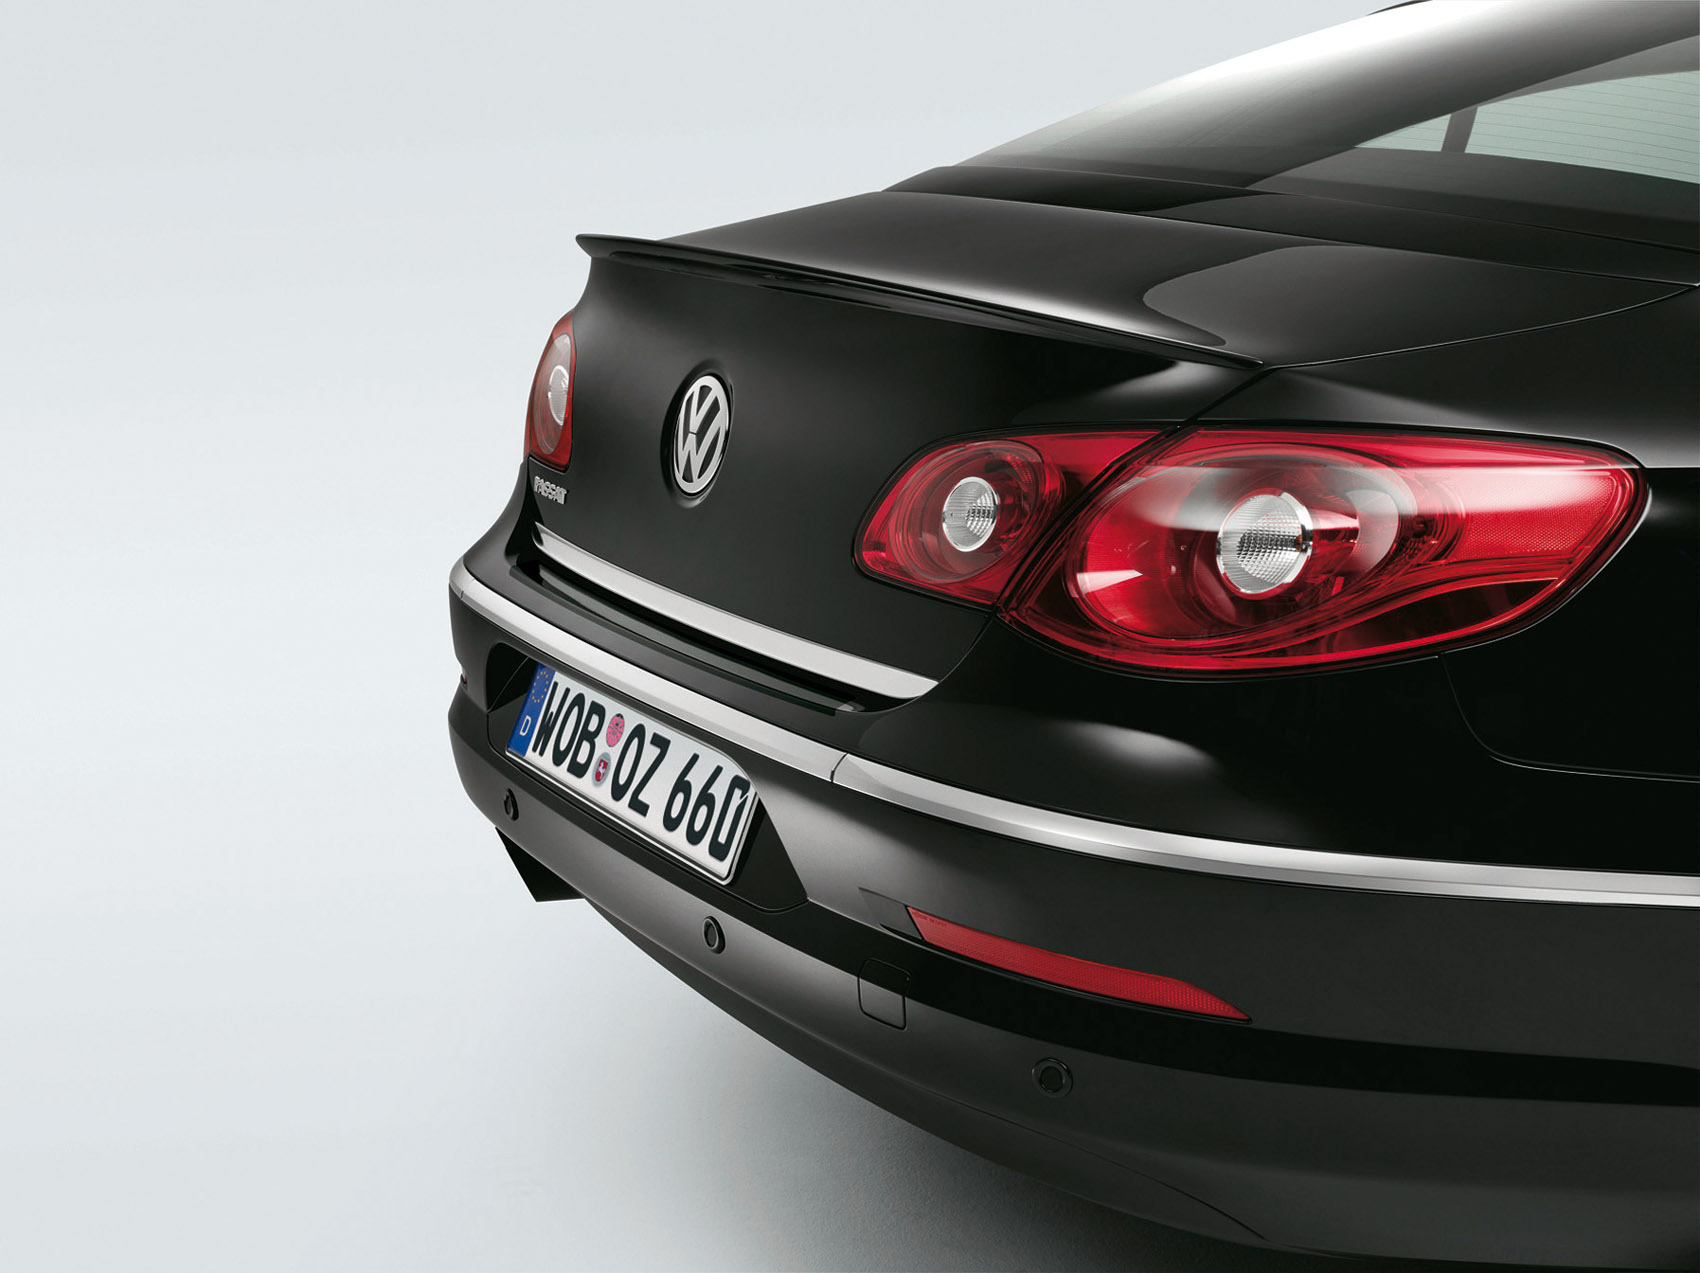 Passat CC Gets VW Genuine Accessories - autoevolution